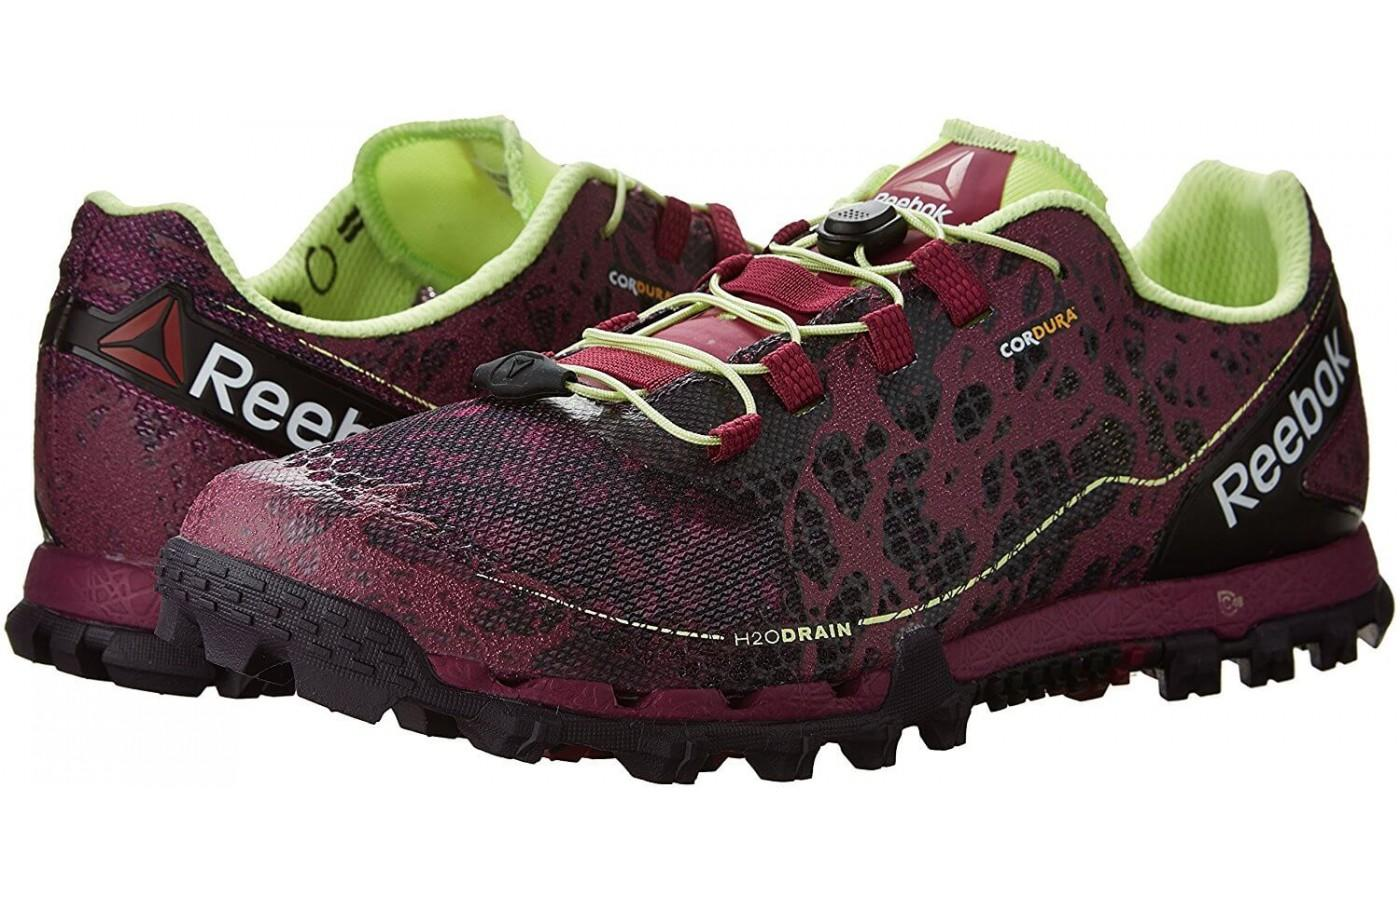 Reebok All Terrain Super is a stylish pair of shoes